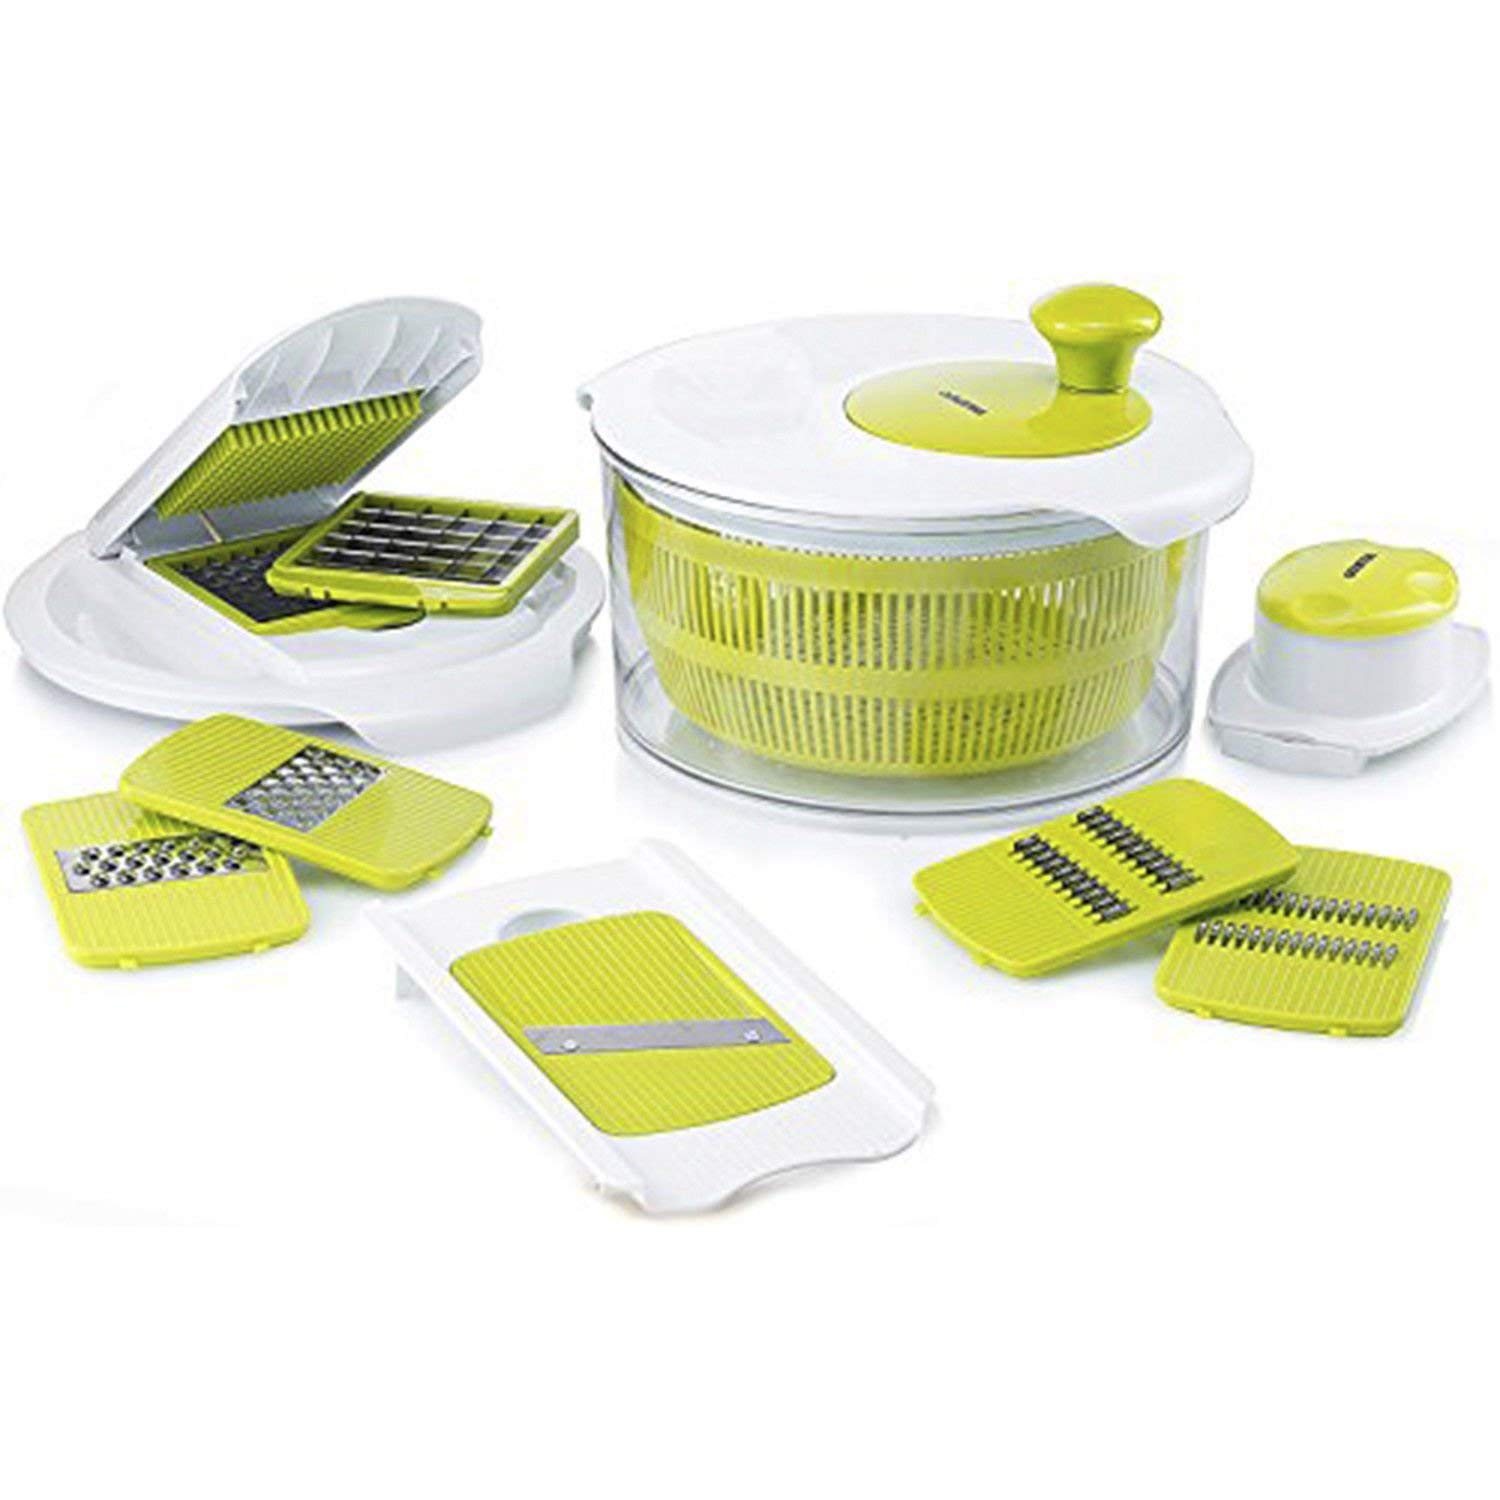 Salad Maker Set – Mandoline Slicer & Salad Spinner With Vegetable Chopper & Vegetable Slicer – Salad Cutter Bowl – Vegetable Dicer Set With Grater – Easy Salad Set